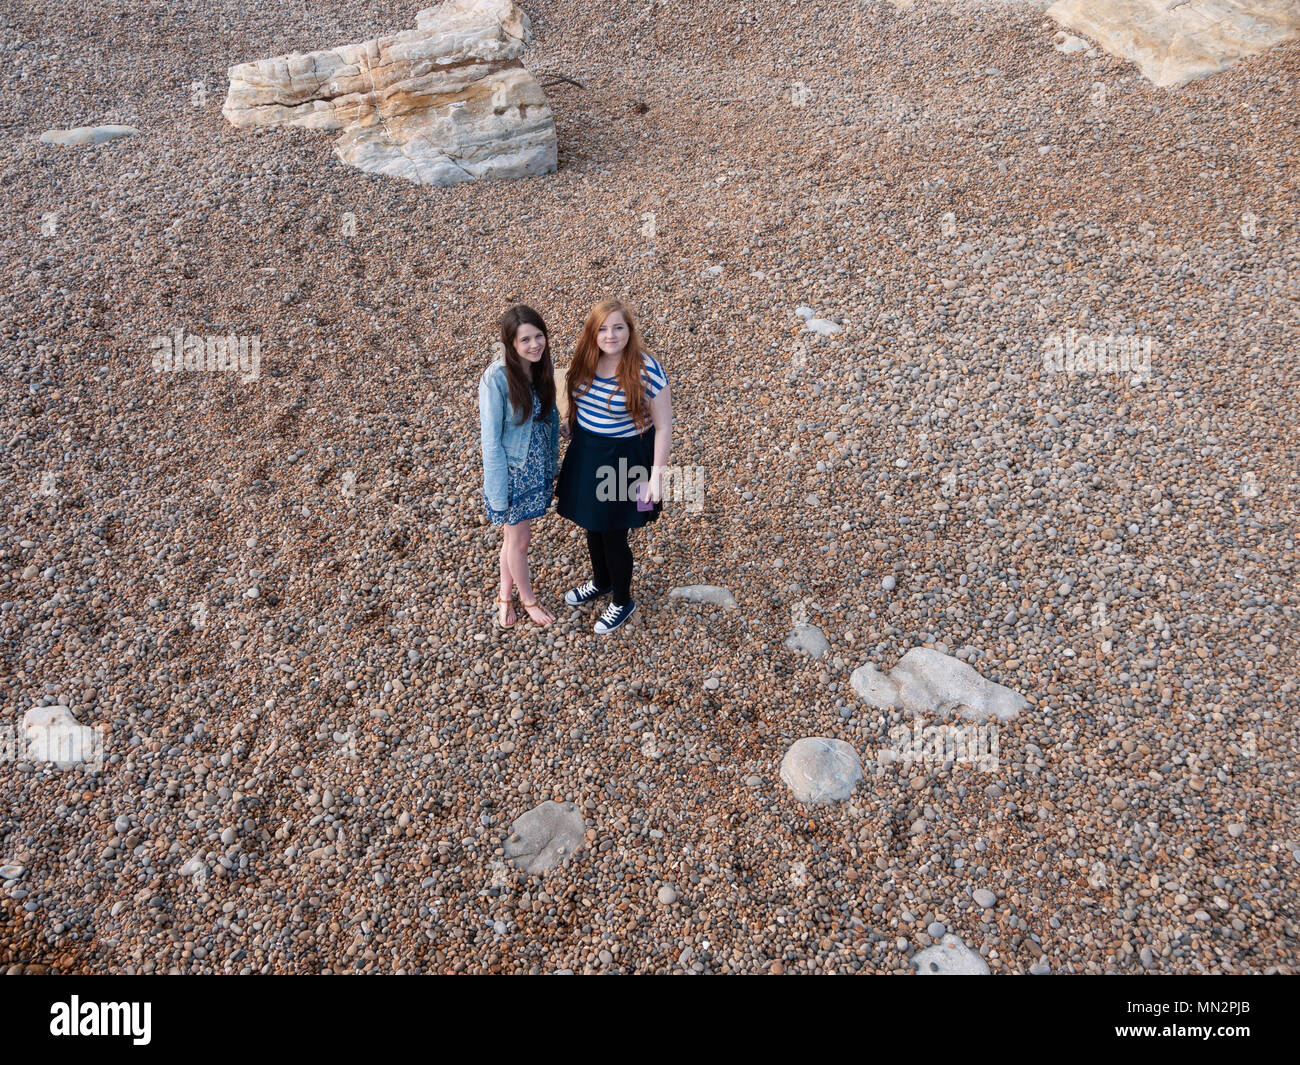 Two young ladies on a pebble beach - Stock Image